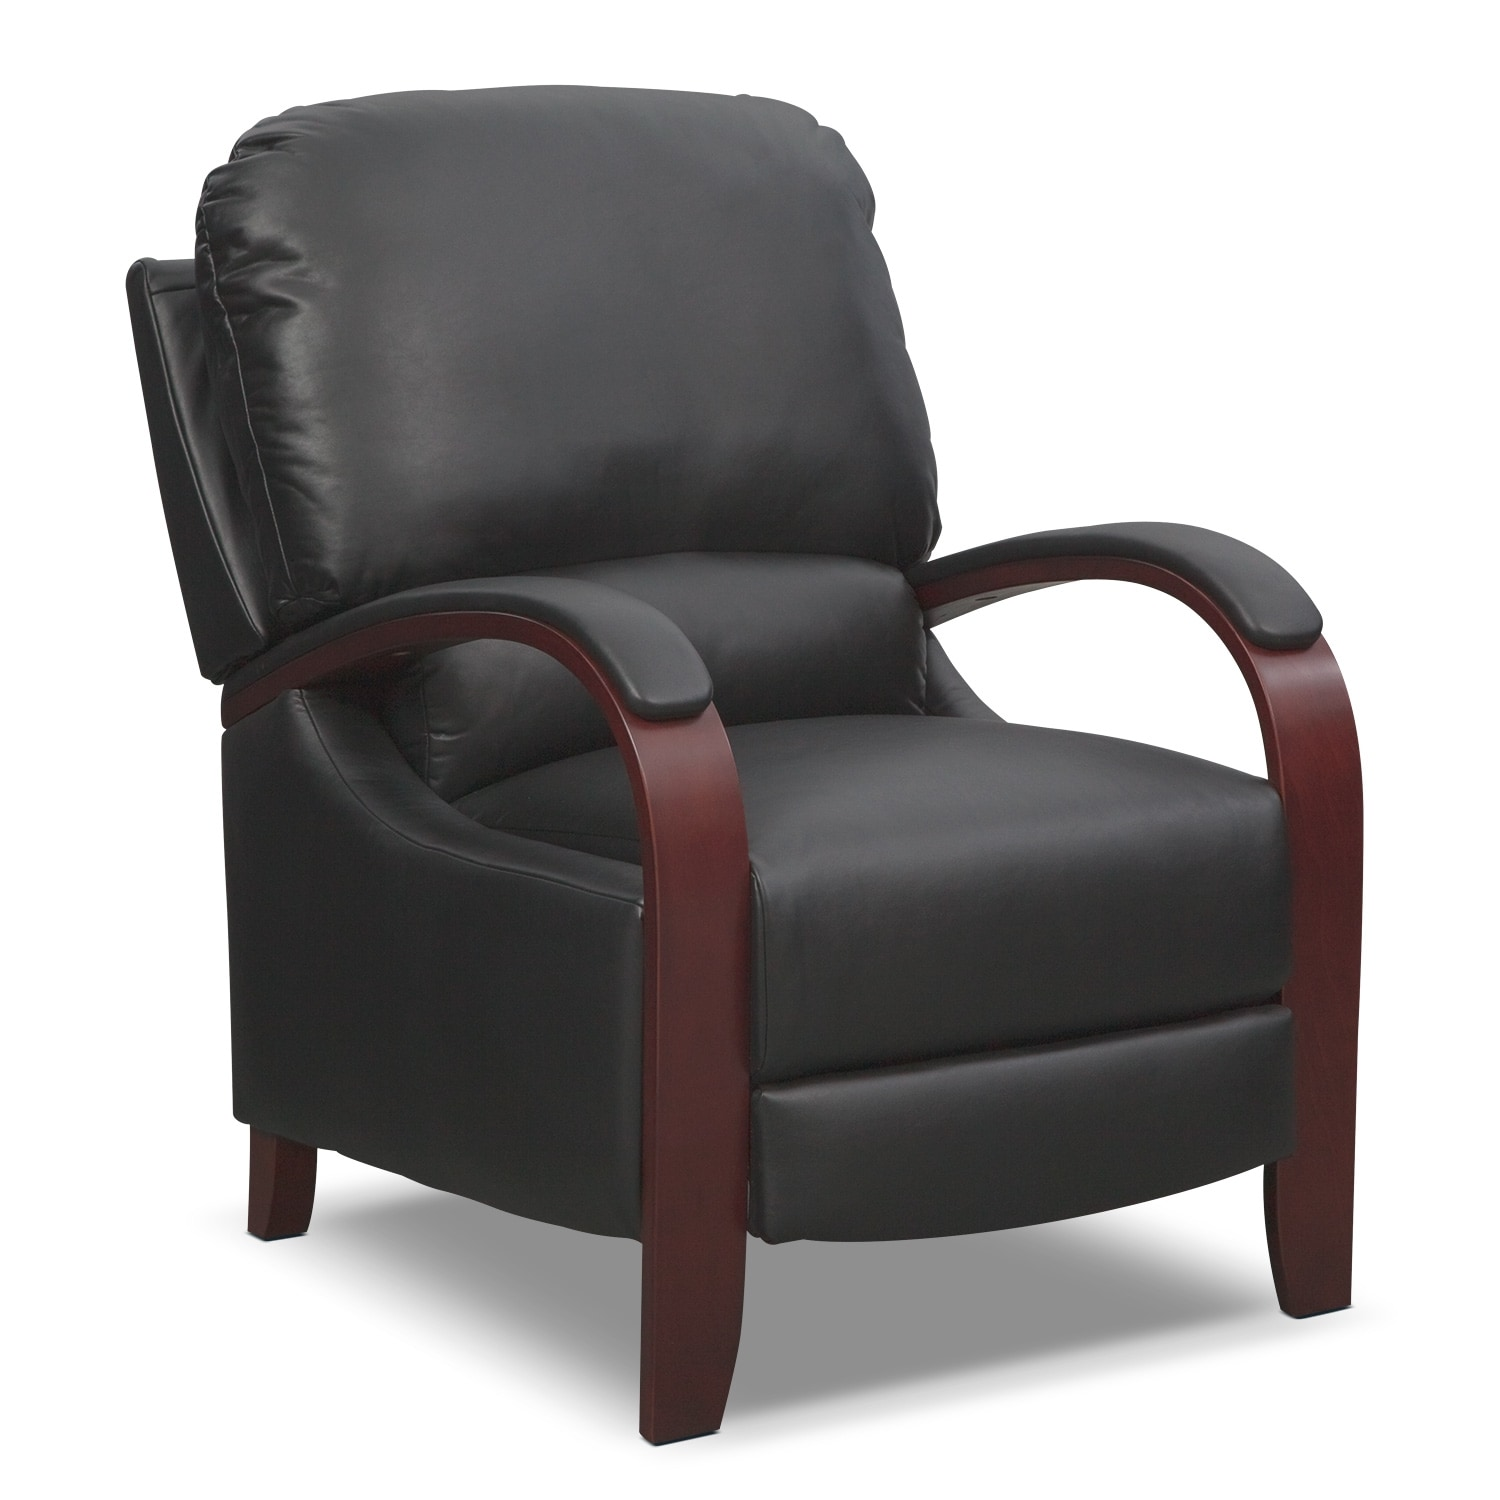 Push Back Chair Healy Push Back Recliner Furniture